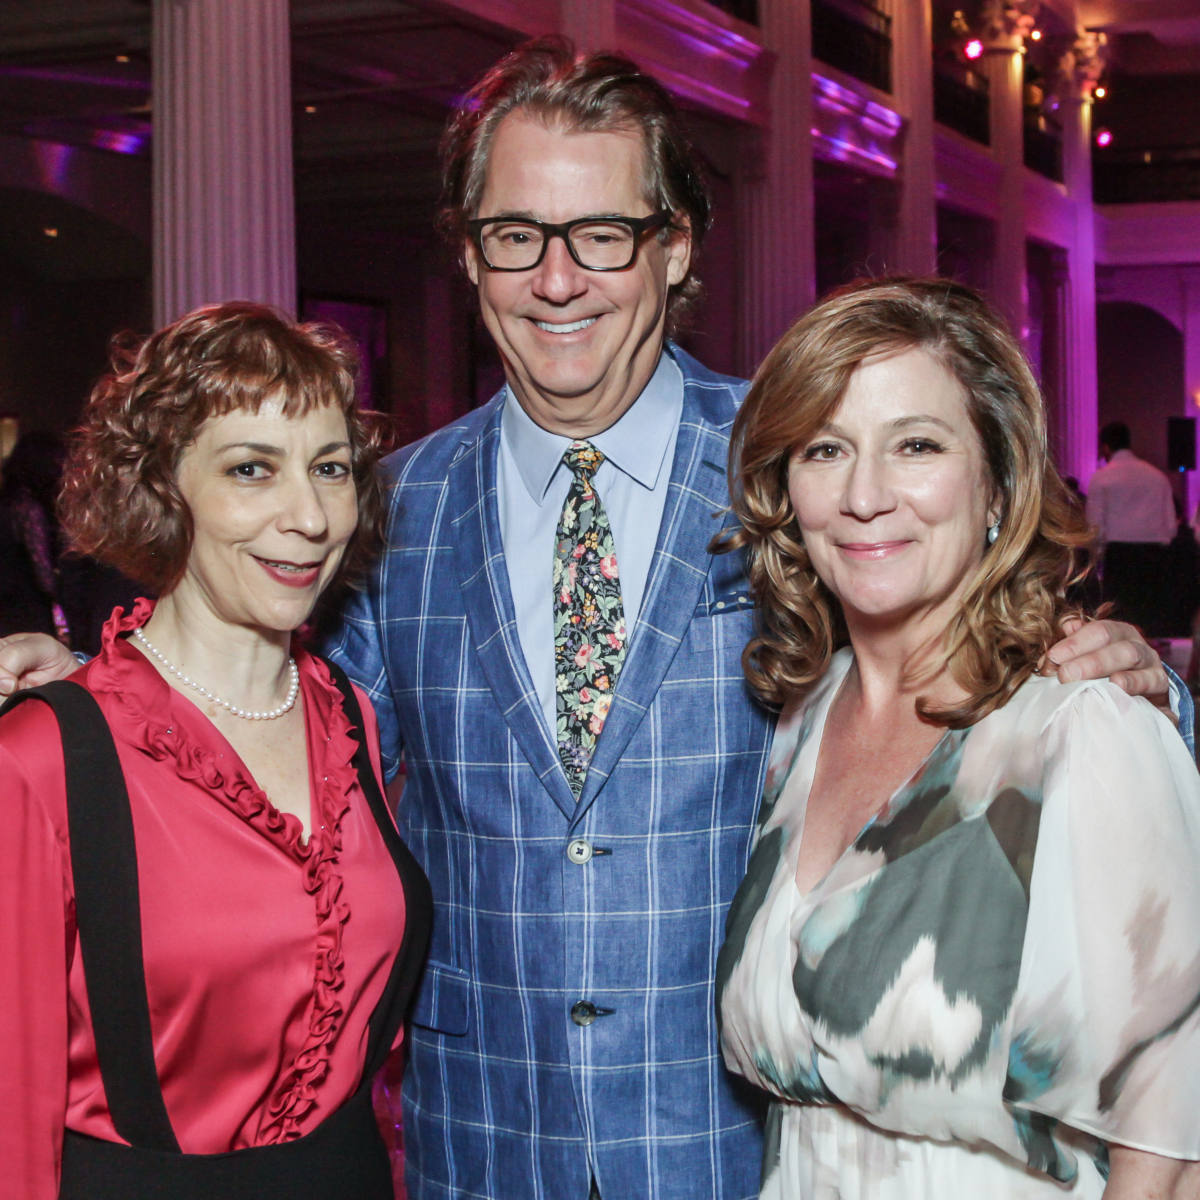 Sarah Rothernberg, Robert Del Grande, Carolyn Piro Landen at Club da Camera